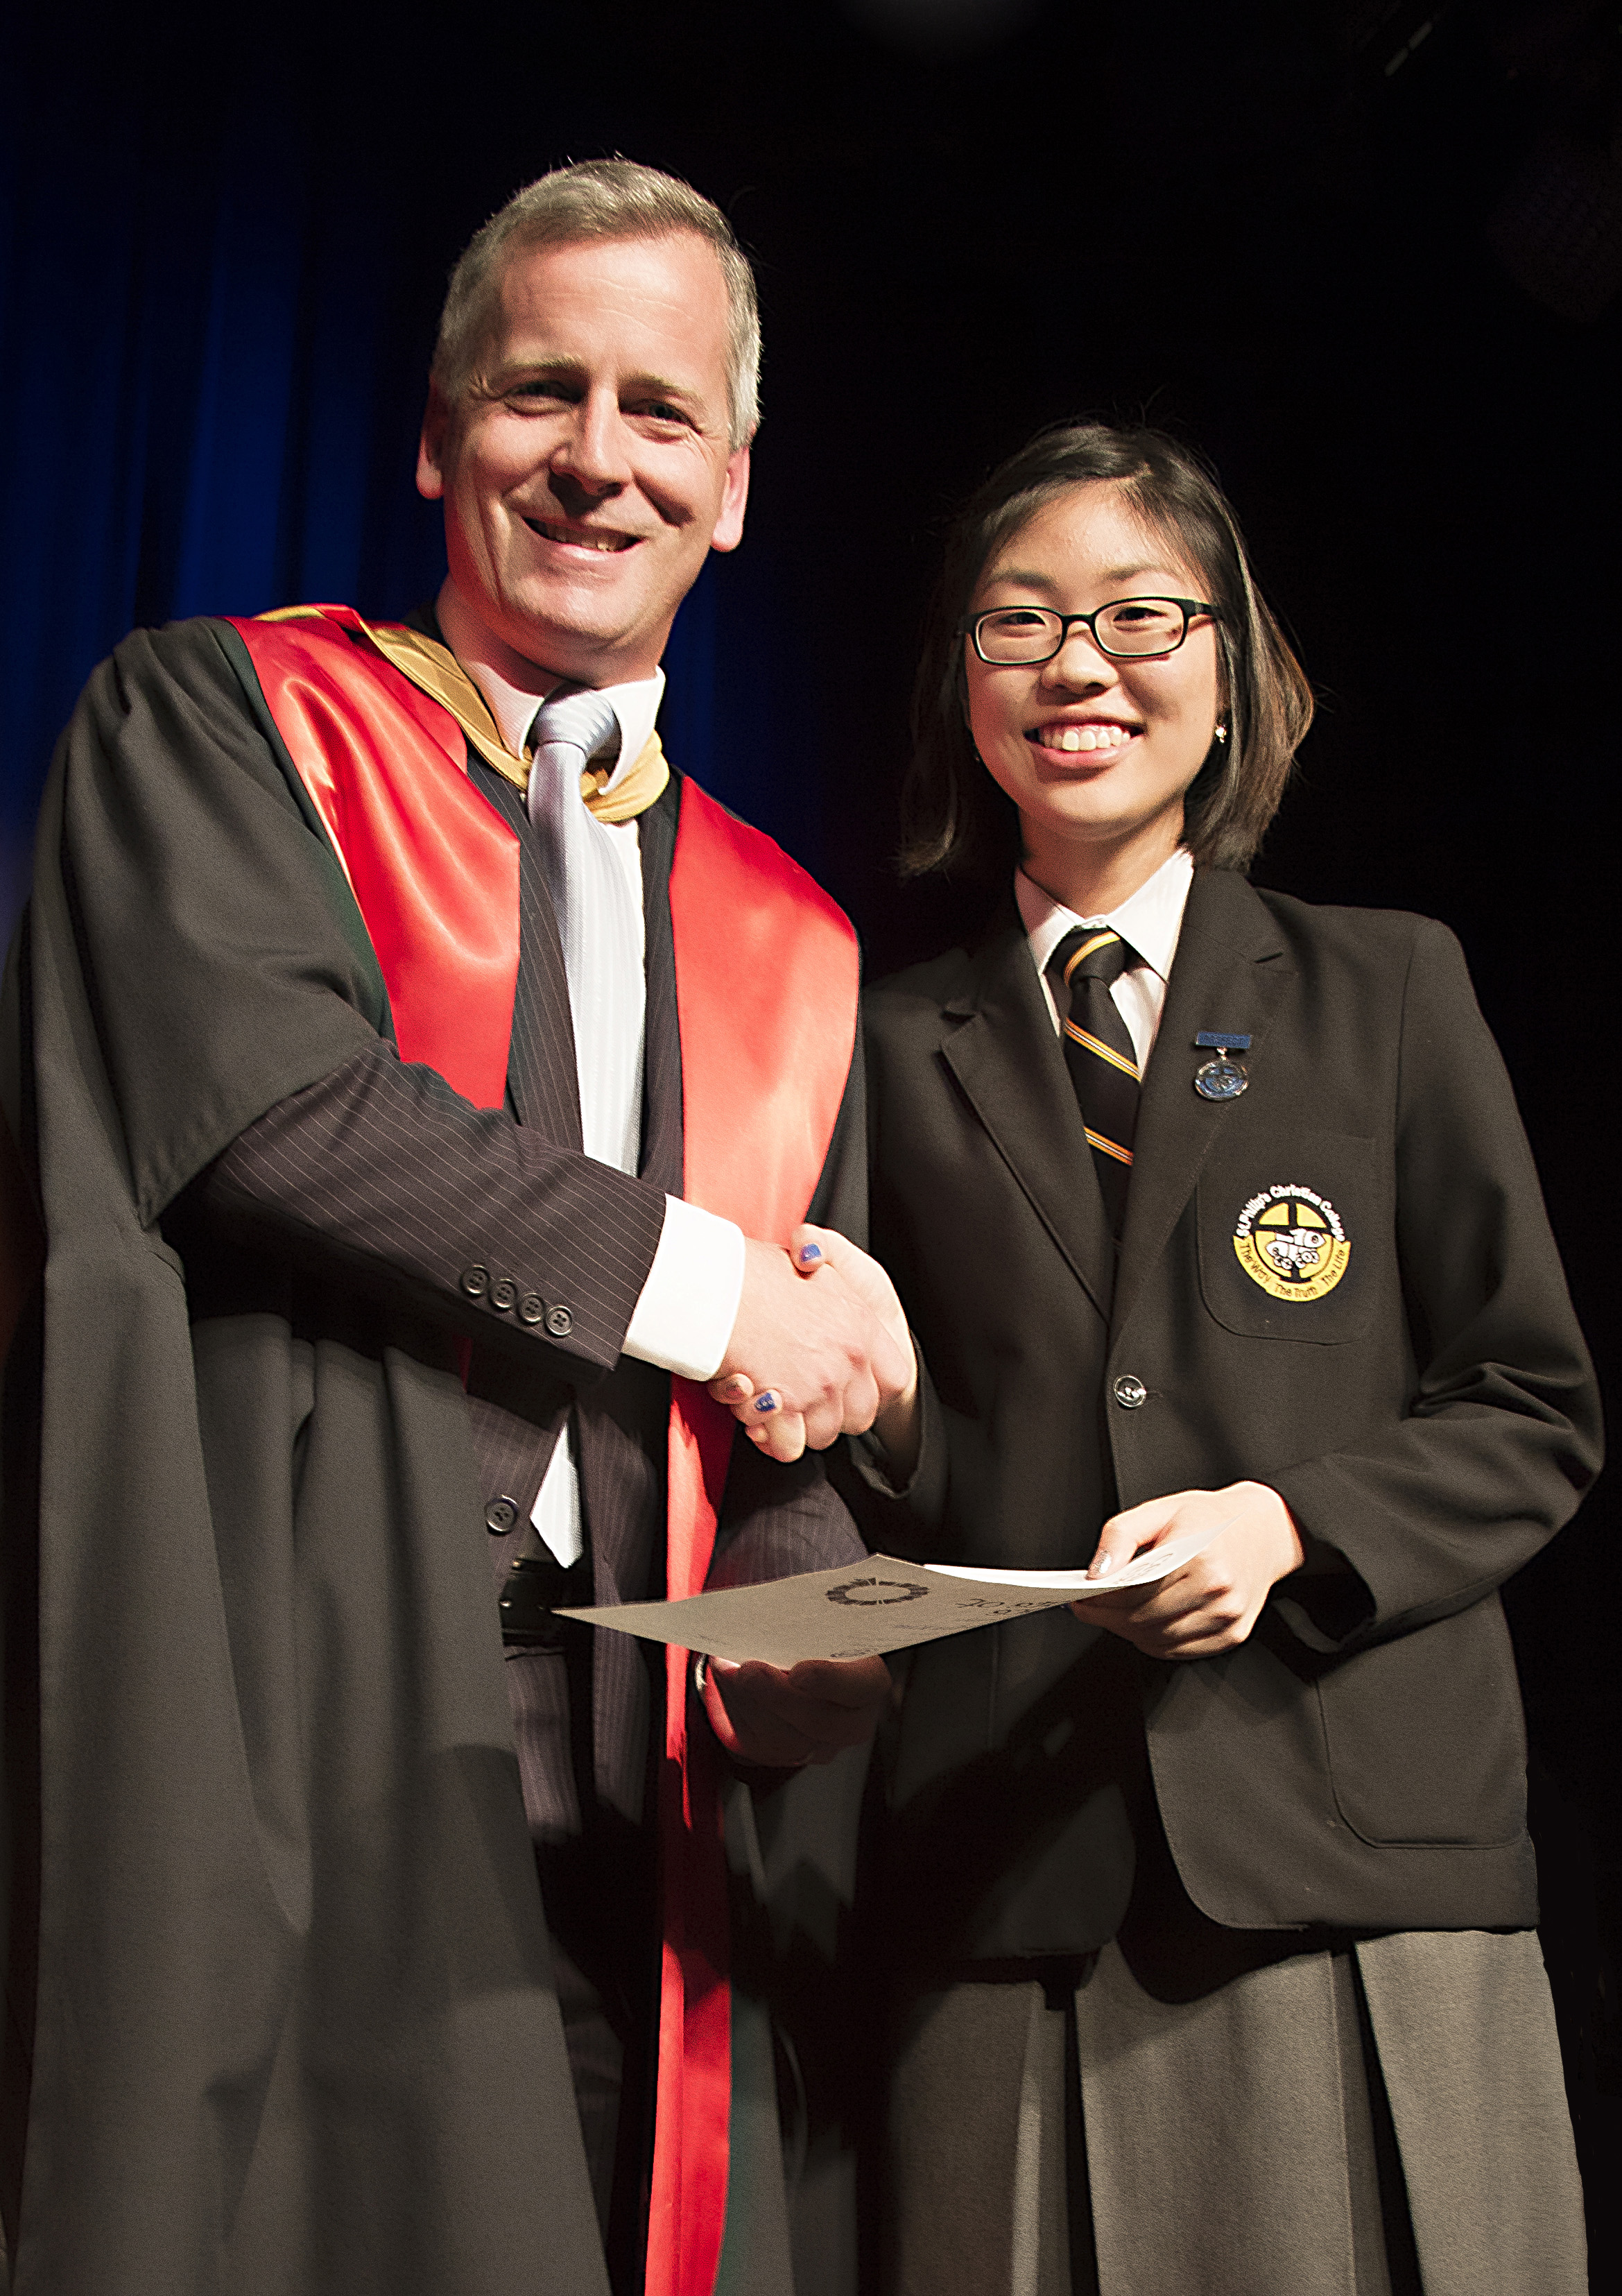 Grace Kim receiving her 2016 Dux Award from Principal Dr Pettersen.  Photo supplied by St Philip's Christian College.